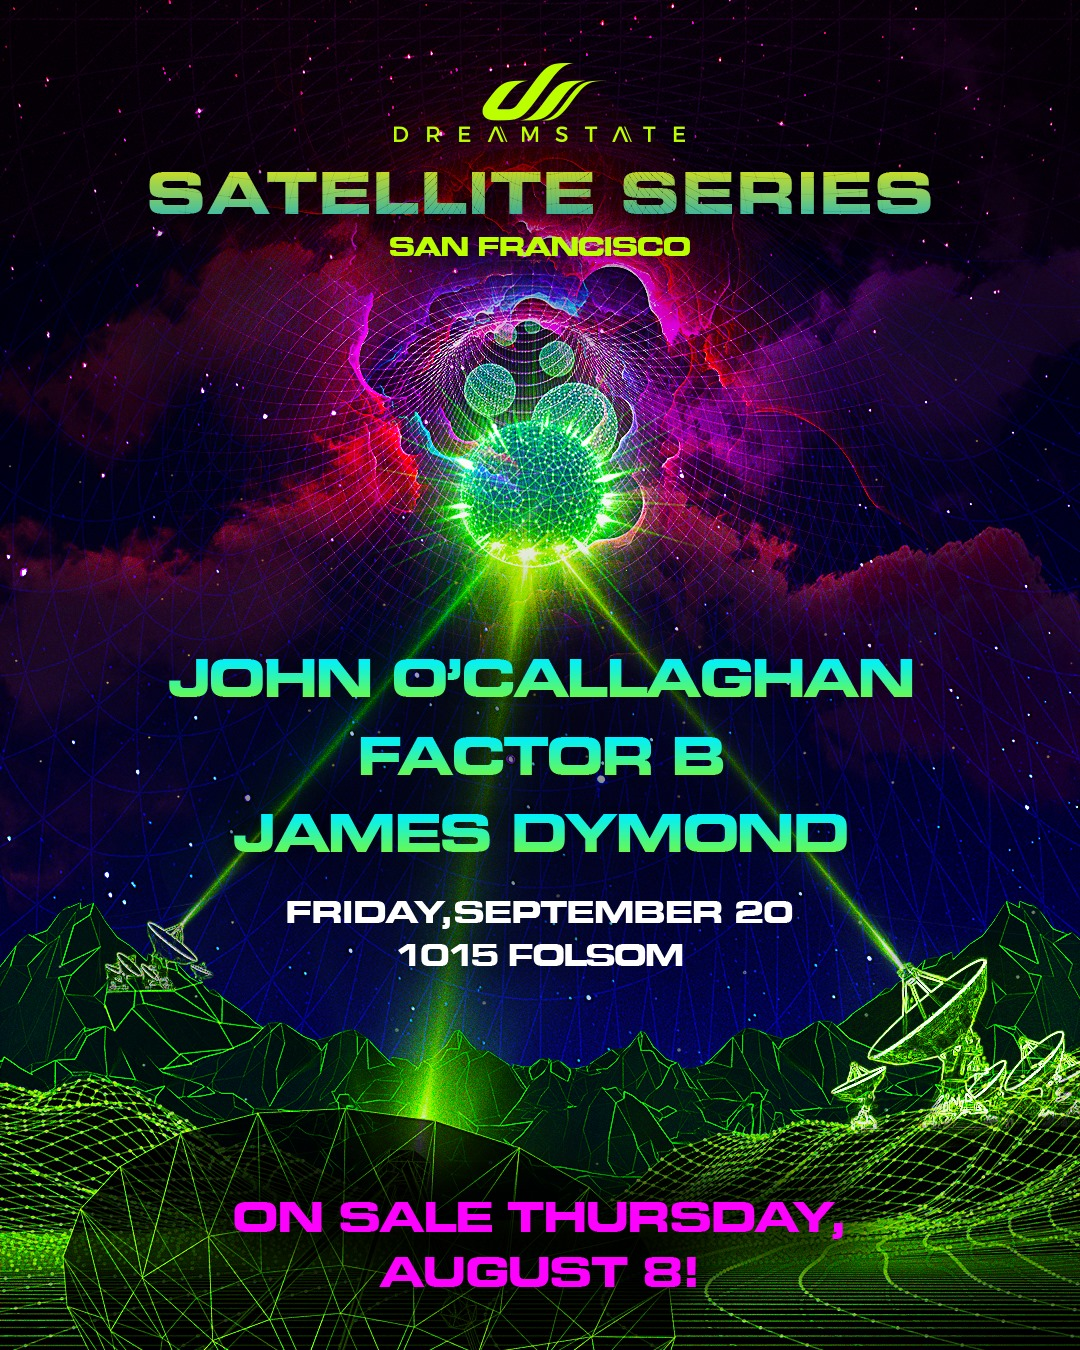 Dreamstate Satellite Series San Francisco Lineup